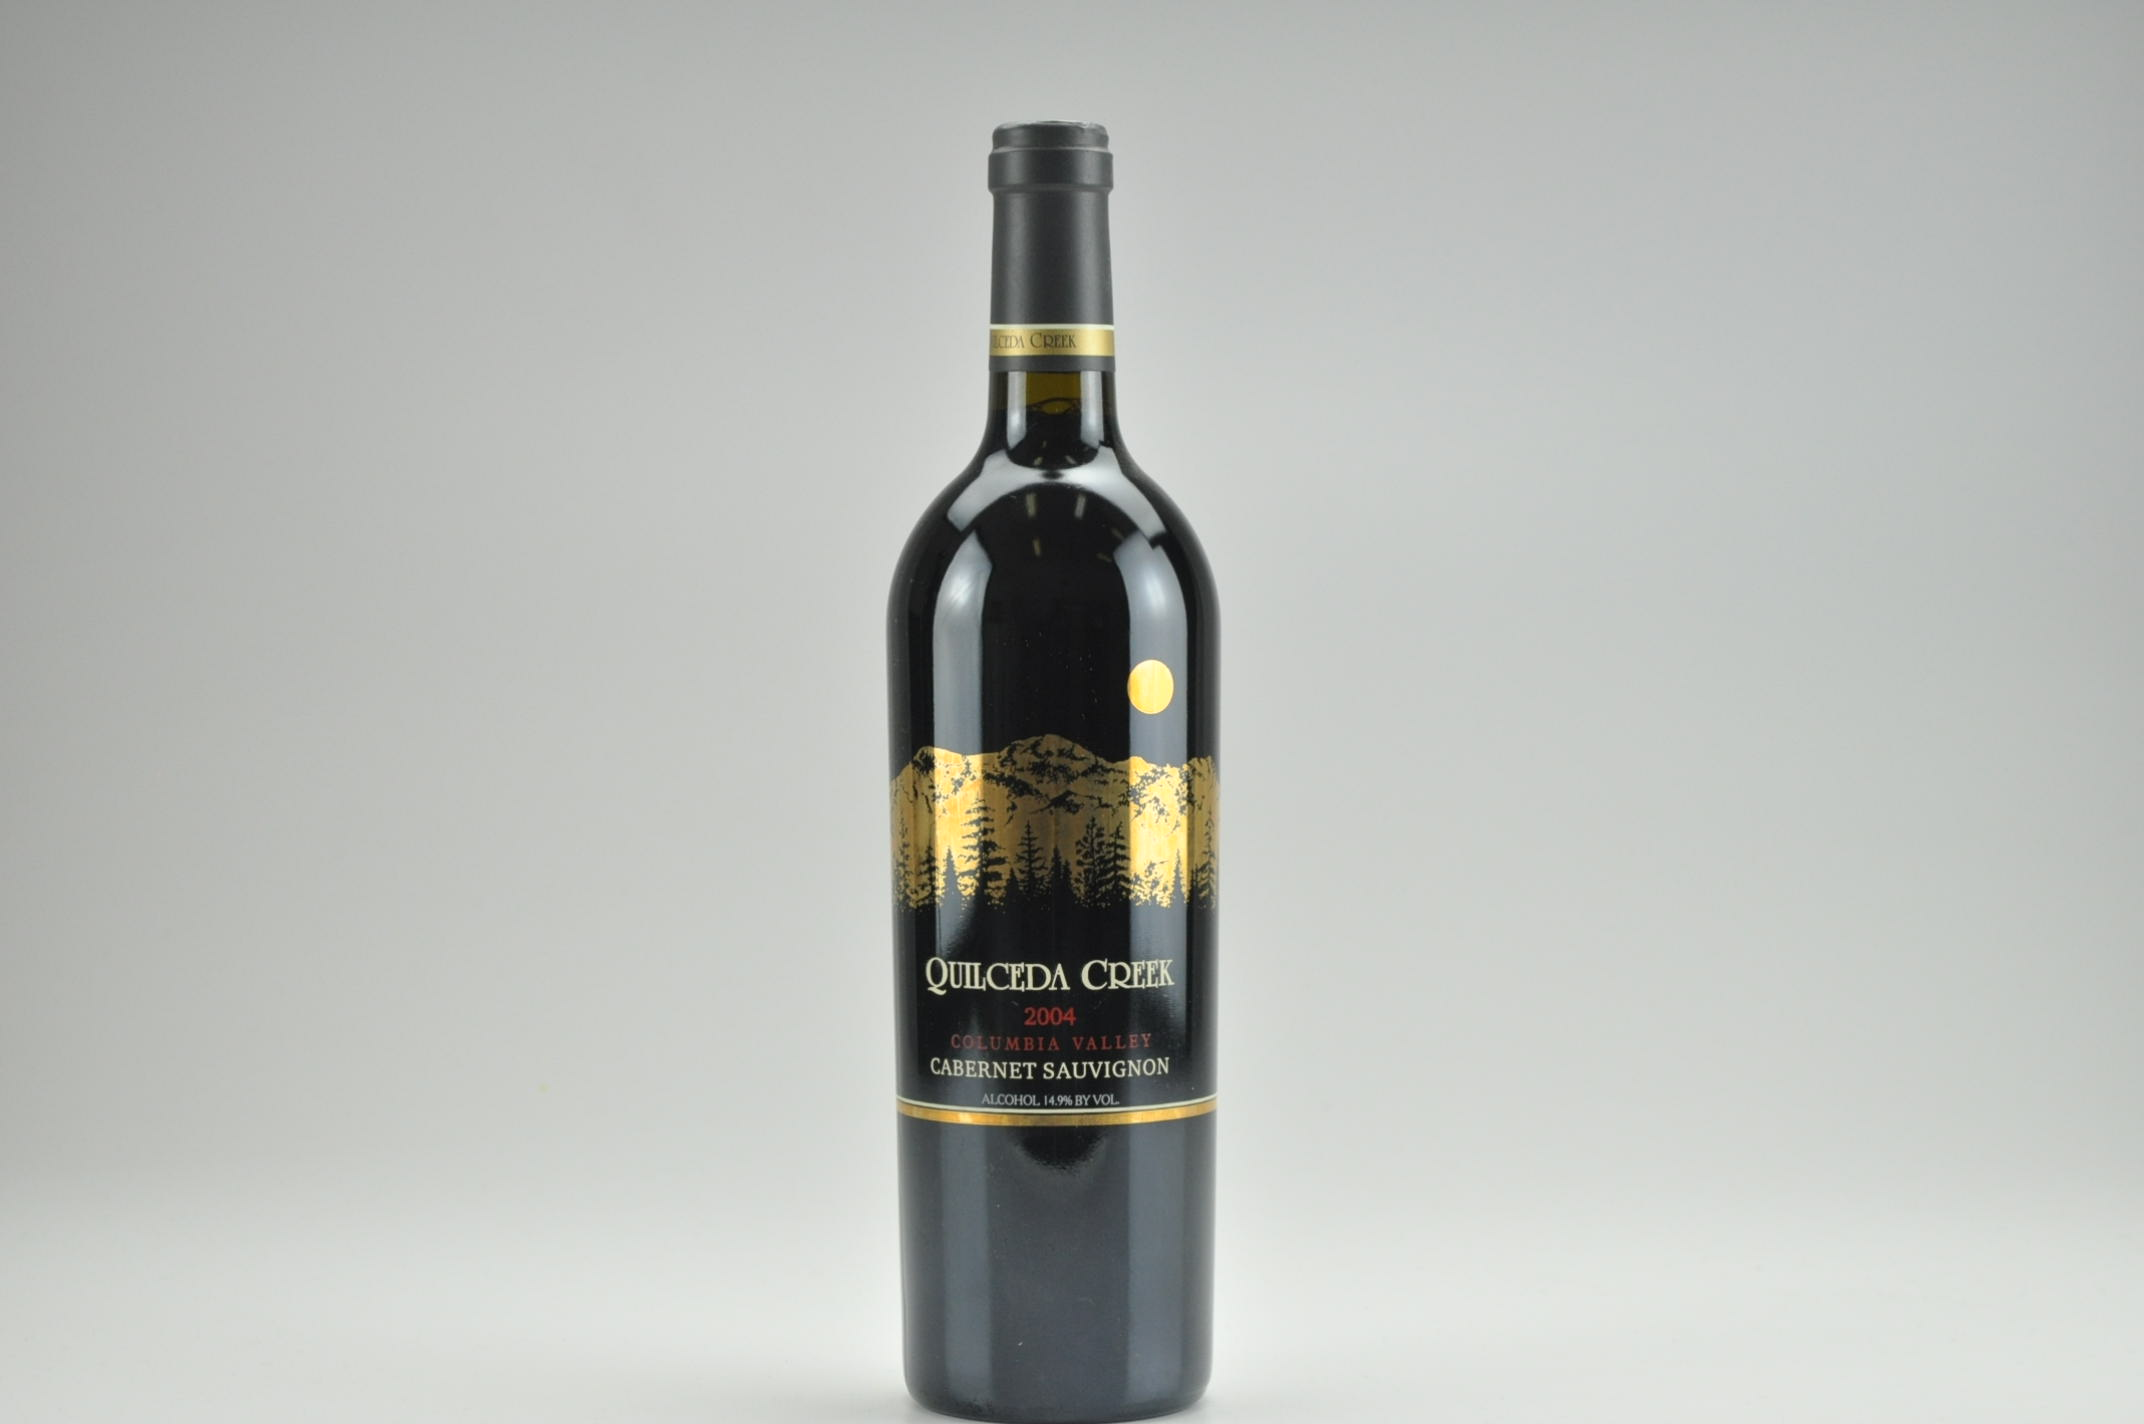 2004 Quilceda Creek Cabernet Sauvignon, Columbia Valley RP--98